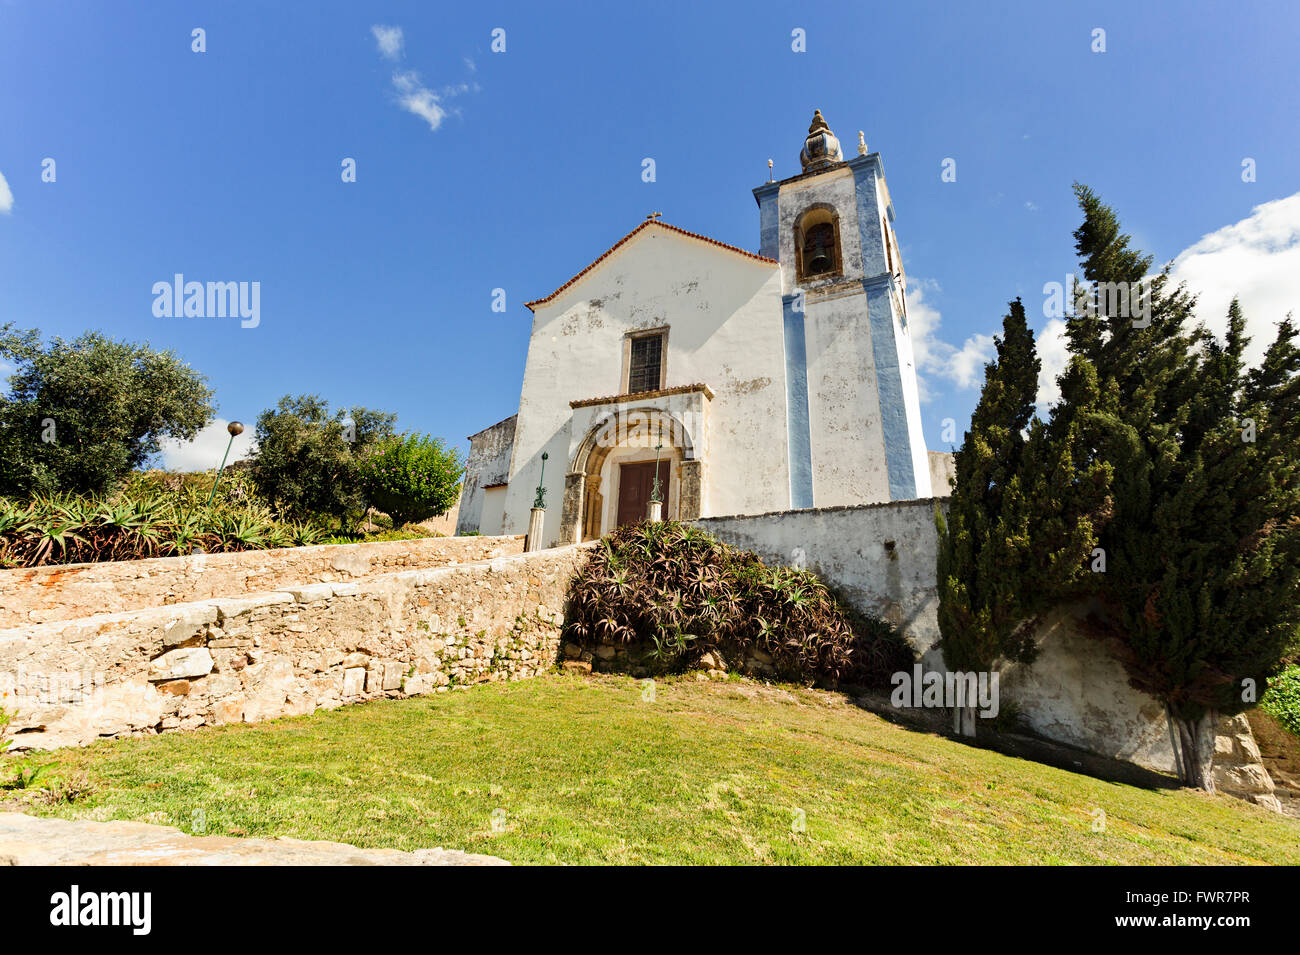 Facade of the Church of Saint Mary inside the walls of the castle of Torres Vedras, Portugal - Stock Image